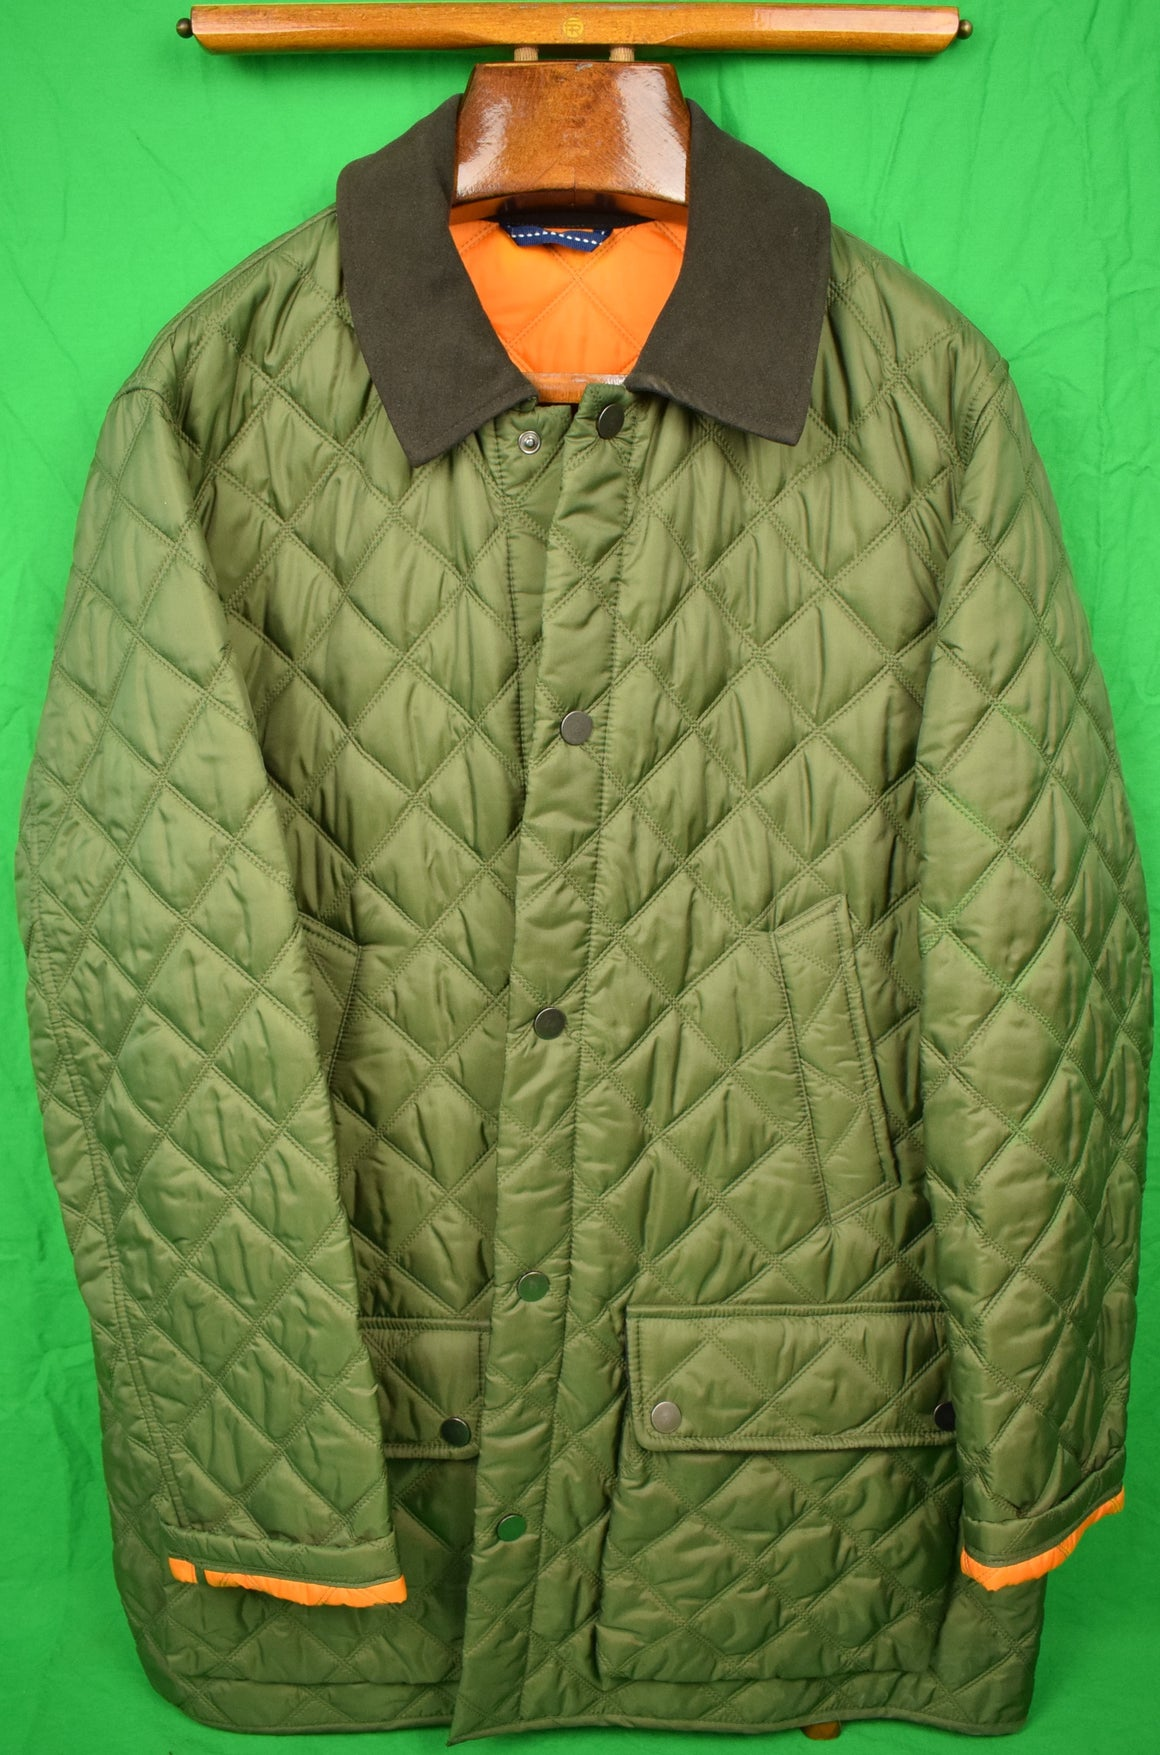 Country Classics Olive Quilted Shooting Jacket w/ Orange Lining Sz 46